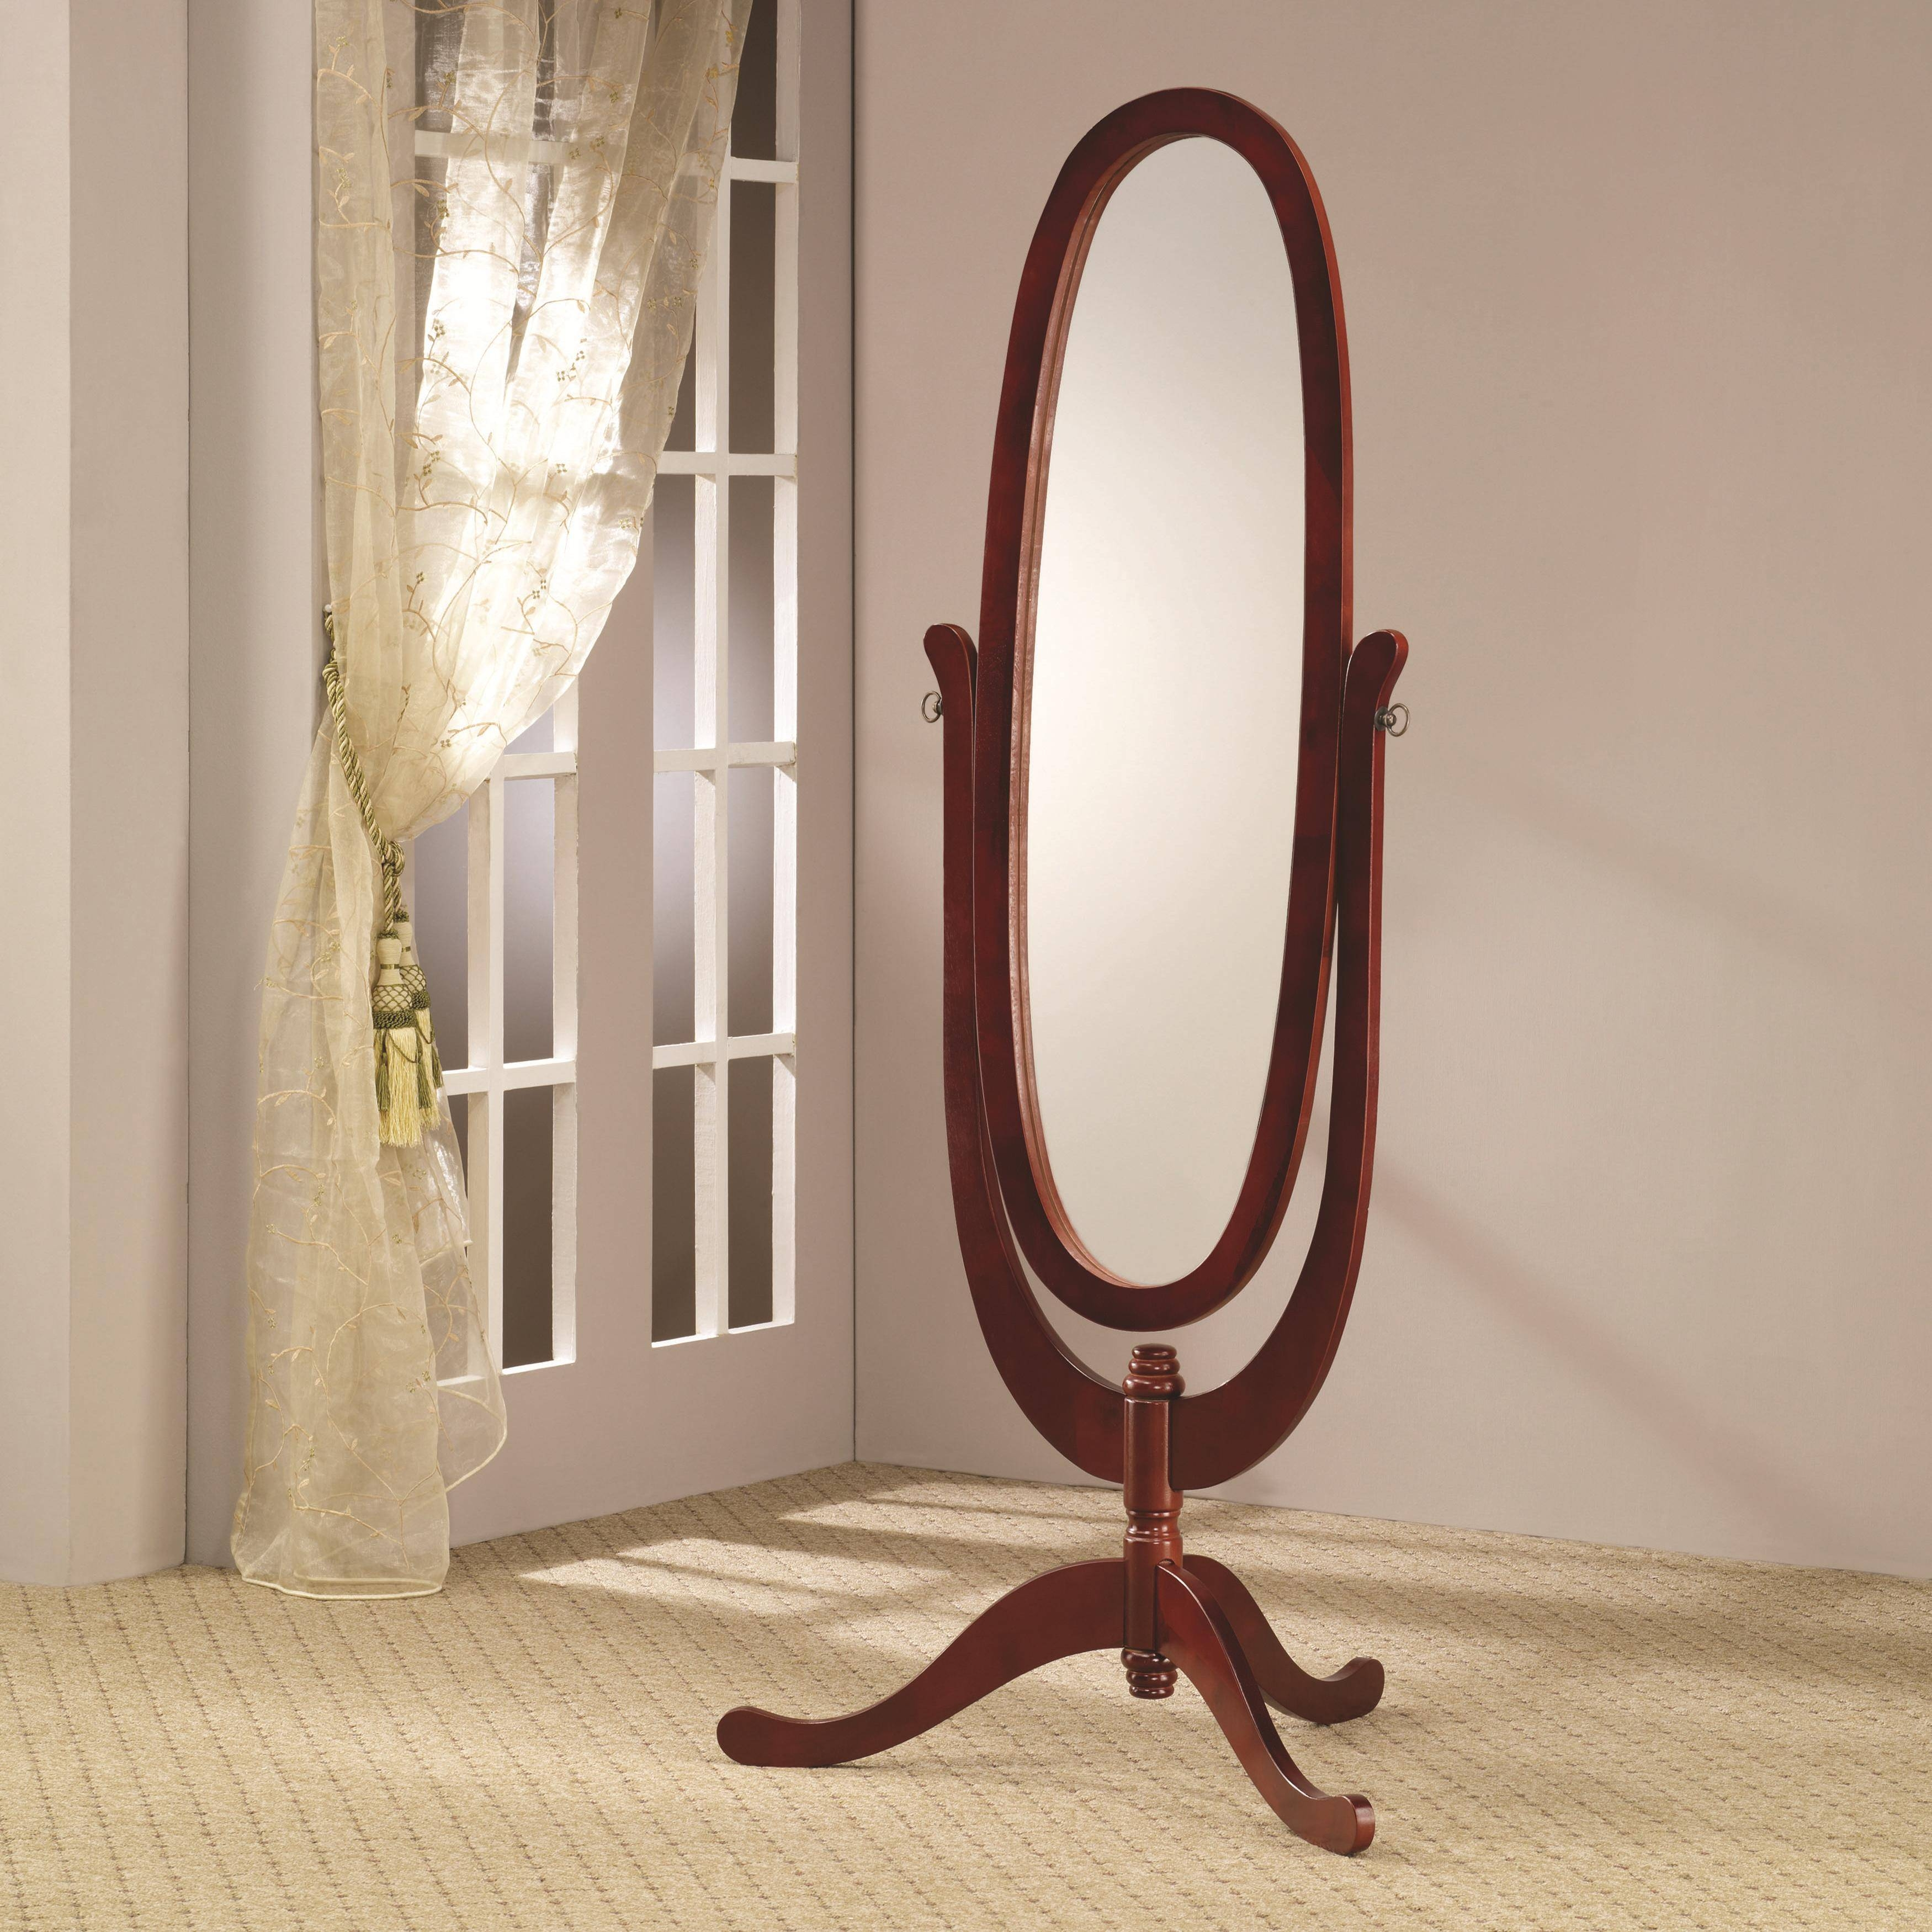 Furniture: Chavel Mirror | Cheval Mirror | Full Length Mirror Stand Regarding Cheval Free Standing Mirrors (View 2 of 15)